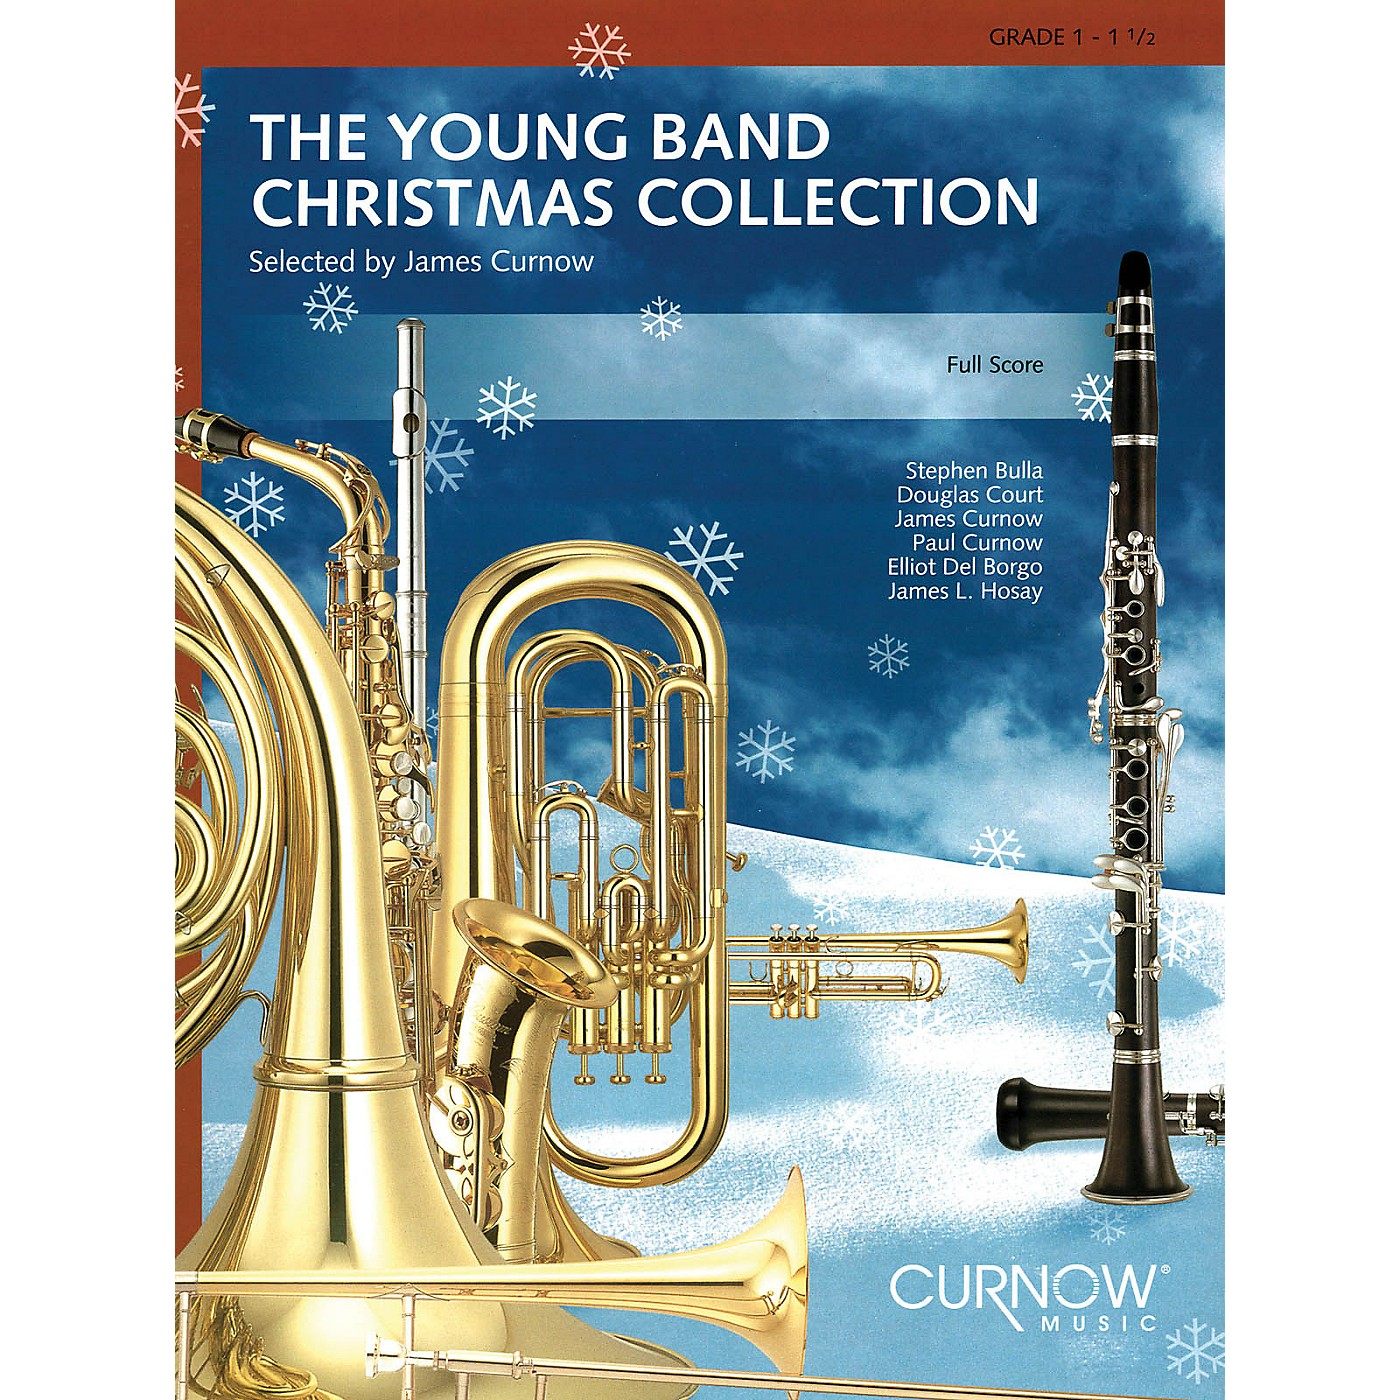 Curnow Music Young Band Christmas Collection (Grade 1.5) (Mallet Percussion) Concert Band thumbnail